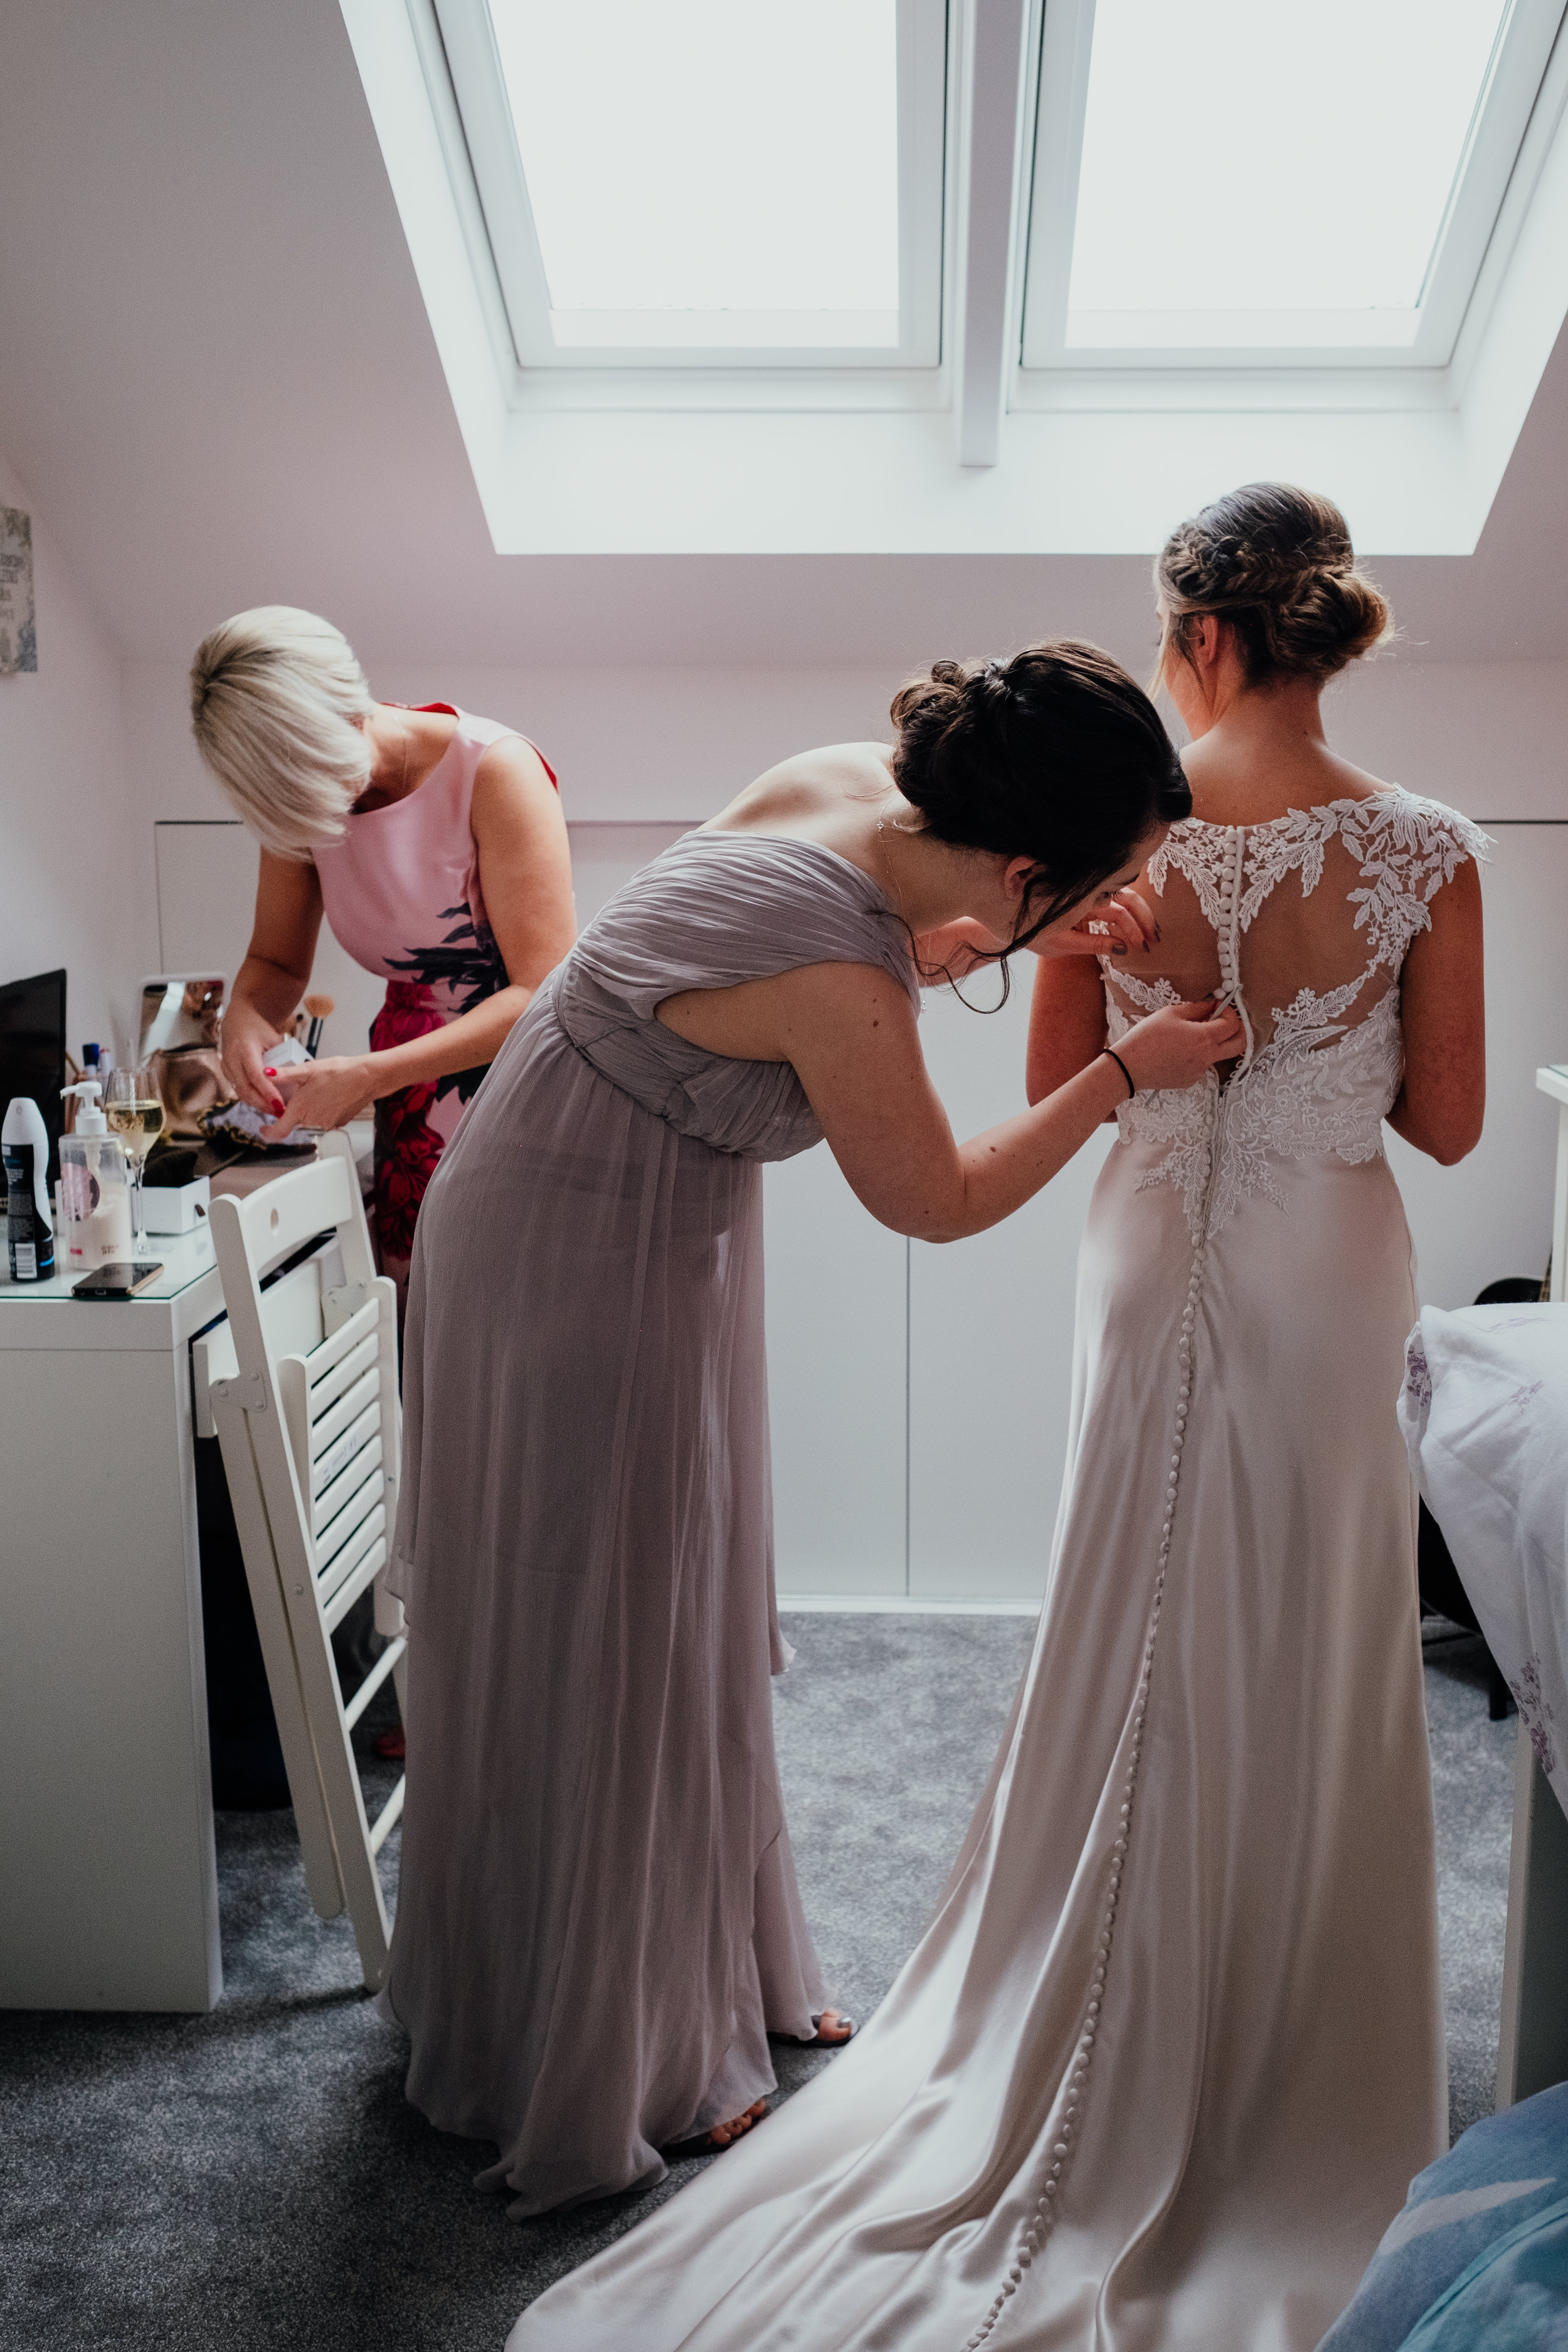 Mother of the Bride and Bridesmaid help Bride put on wedding dress